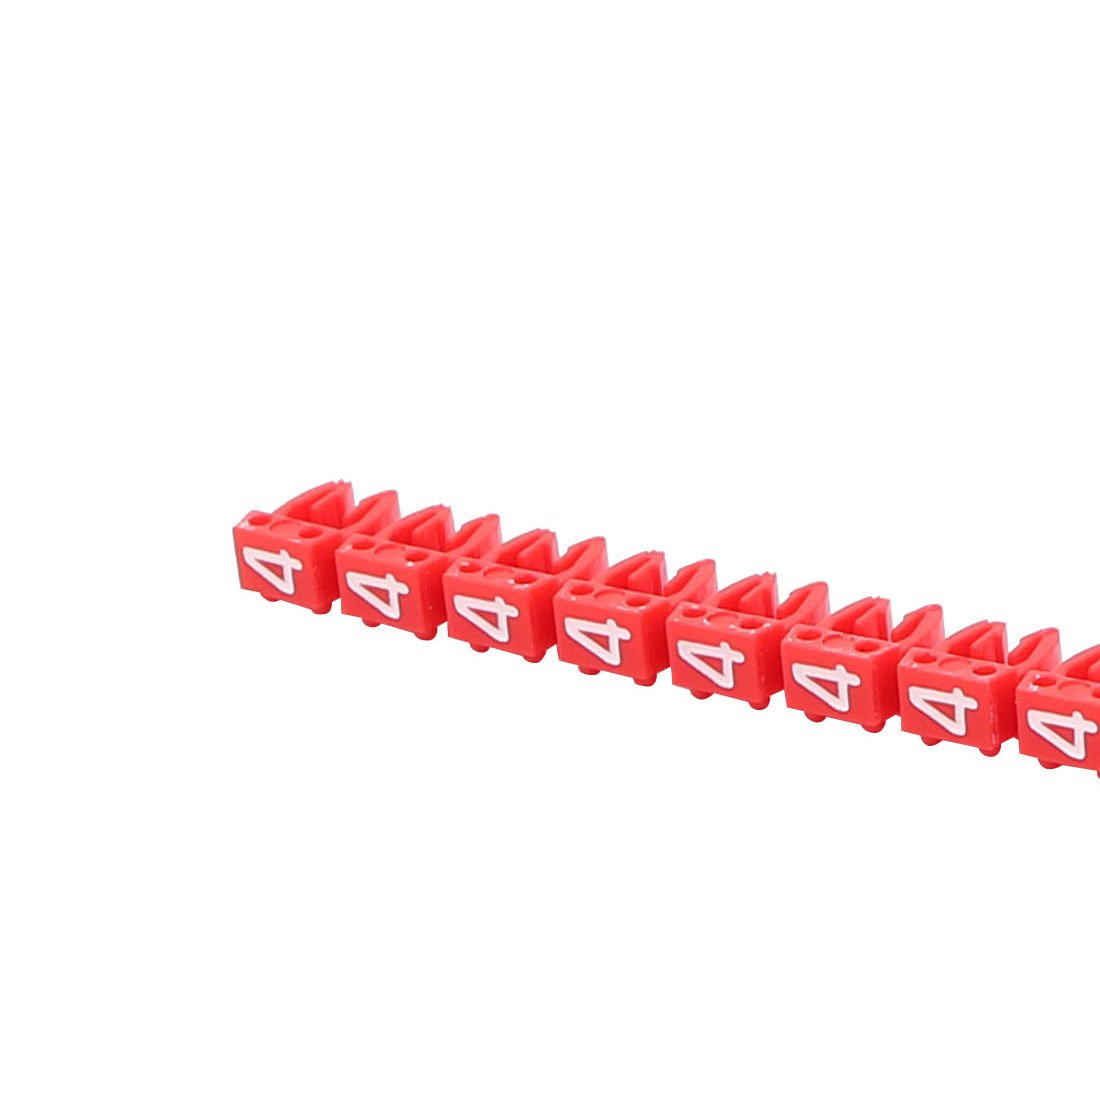 uxcell 20Pcs Letters4 inches Network Cable Labels Markers Red for 3.0-4.0mm Dia Wire